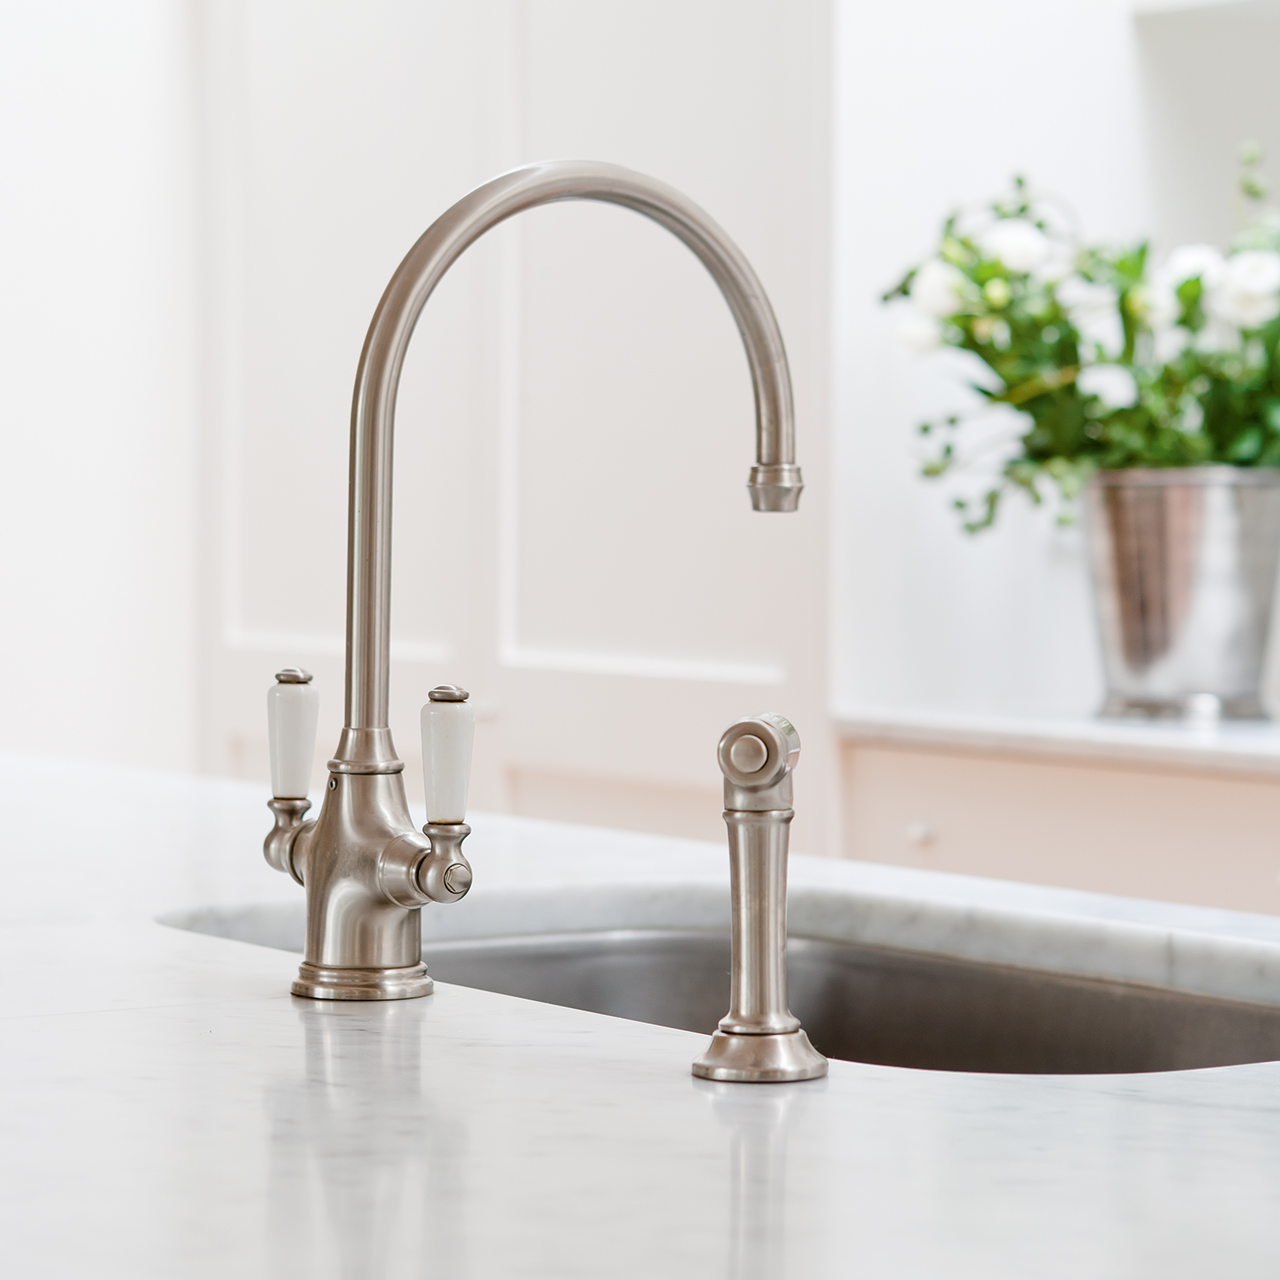 Perrin and Rowe 4360 Phoenician Tap with Rinse - Sinks-Taps.com